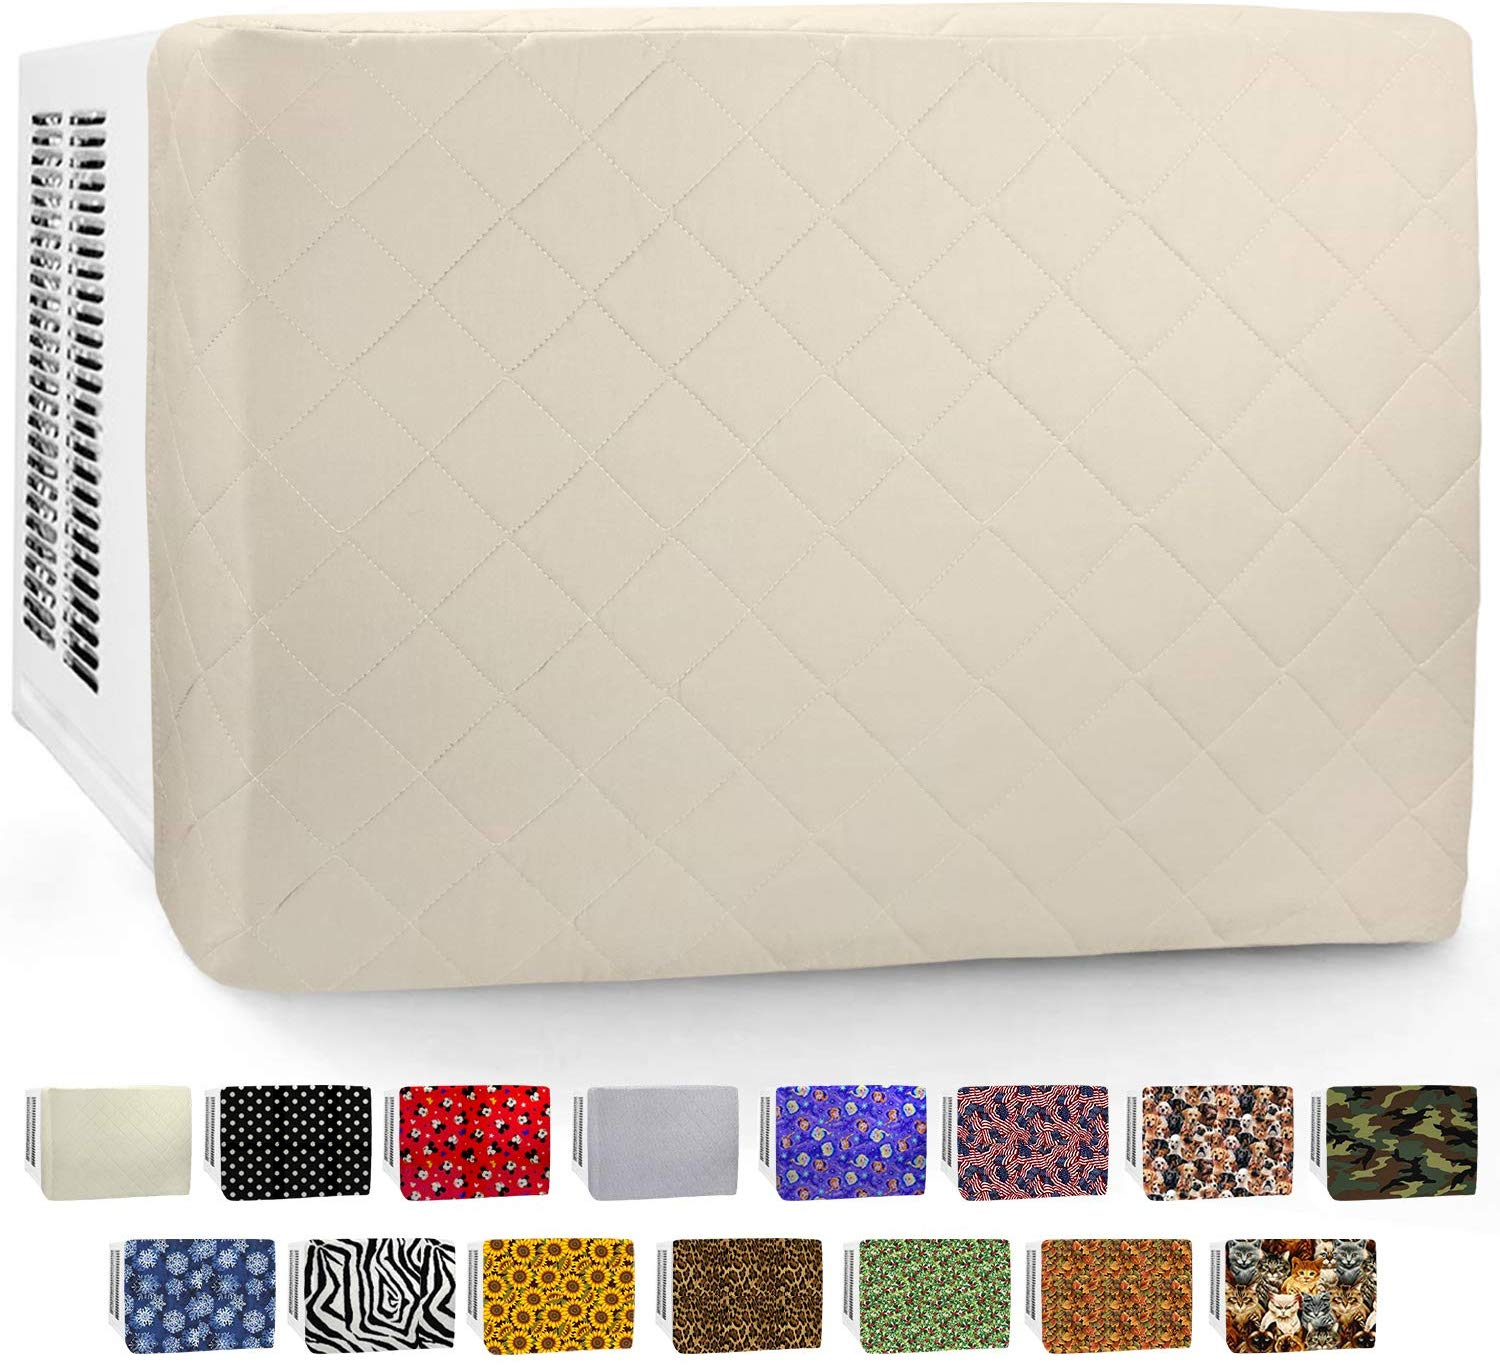 In Wall AC Front Cover (3-Layer) Decorative Air Conditioner Sleeve